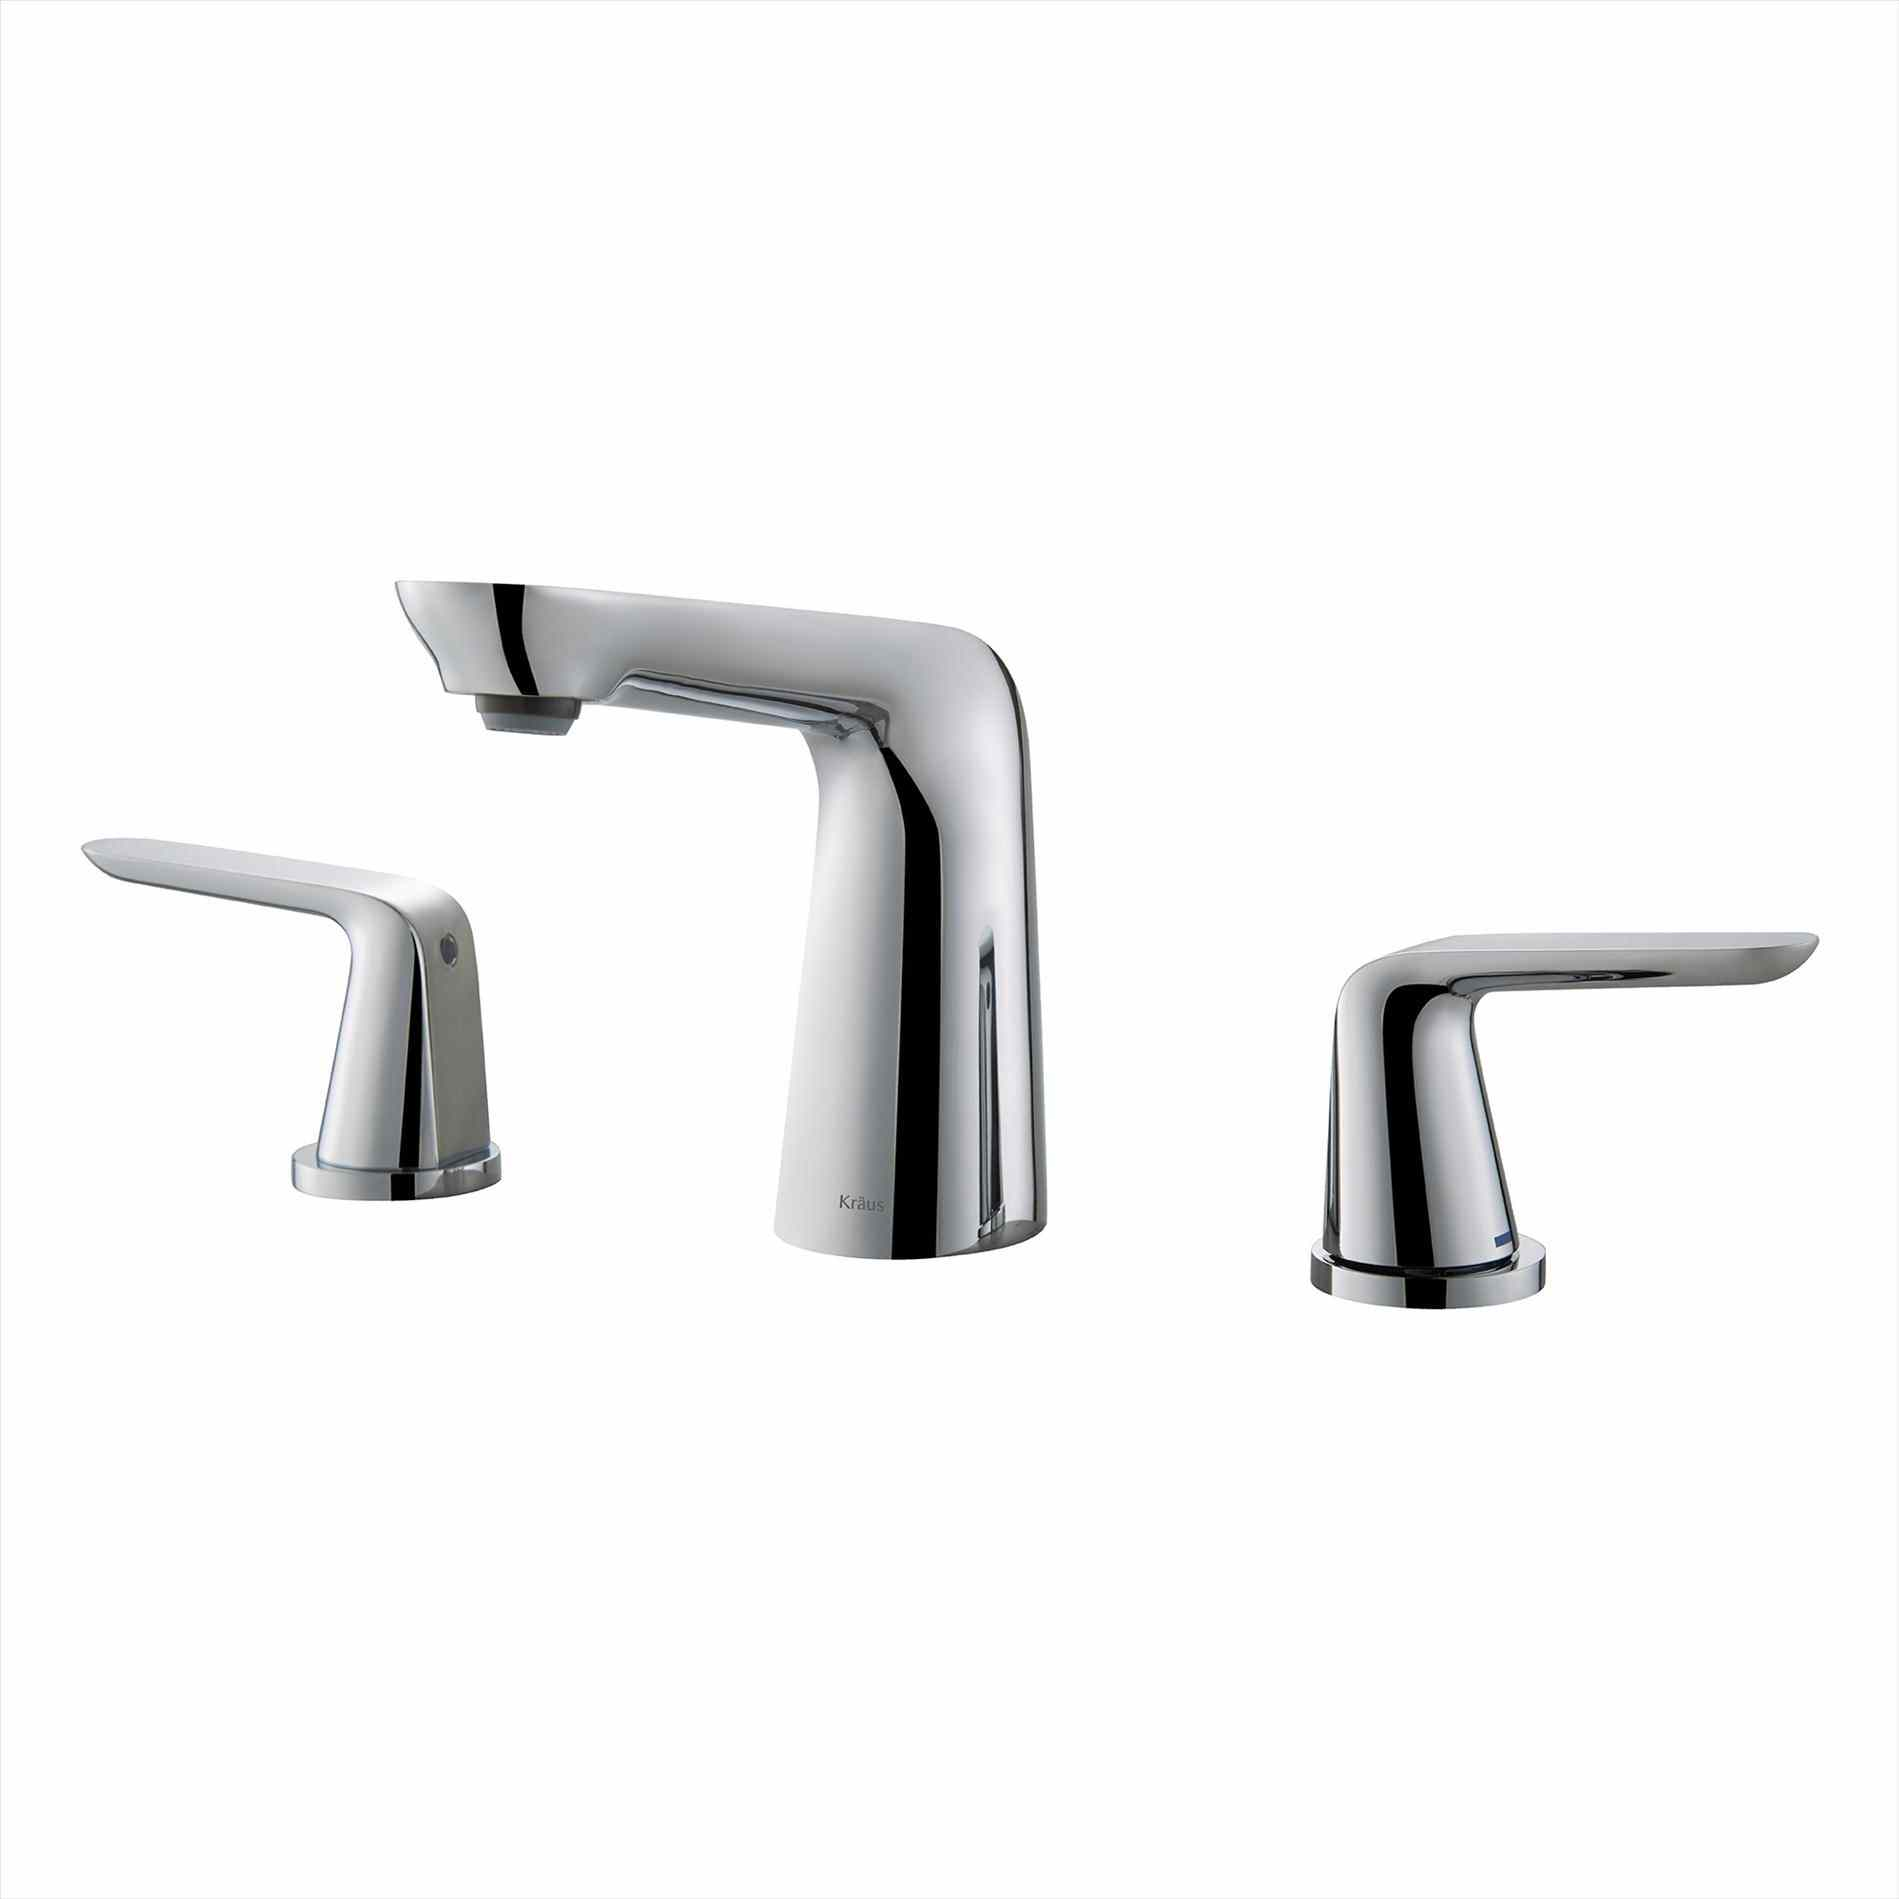 Jado Bathroom Fixtures Farmlandcanada throughout size 1899 X 1899